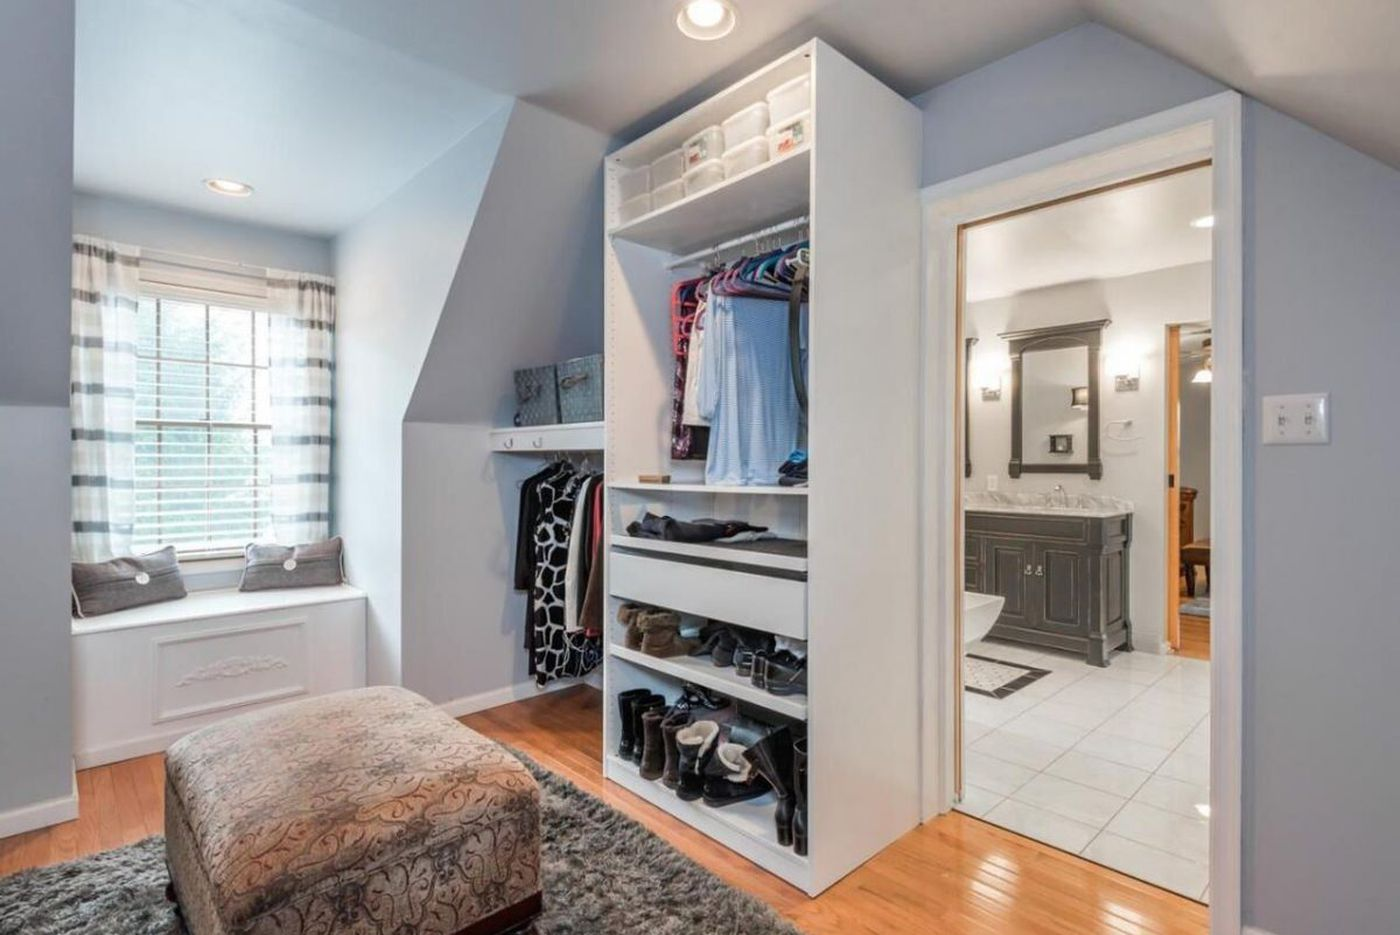 Suburban Philadelphia houses with dressing rooms the size of some studio apartments